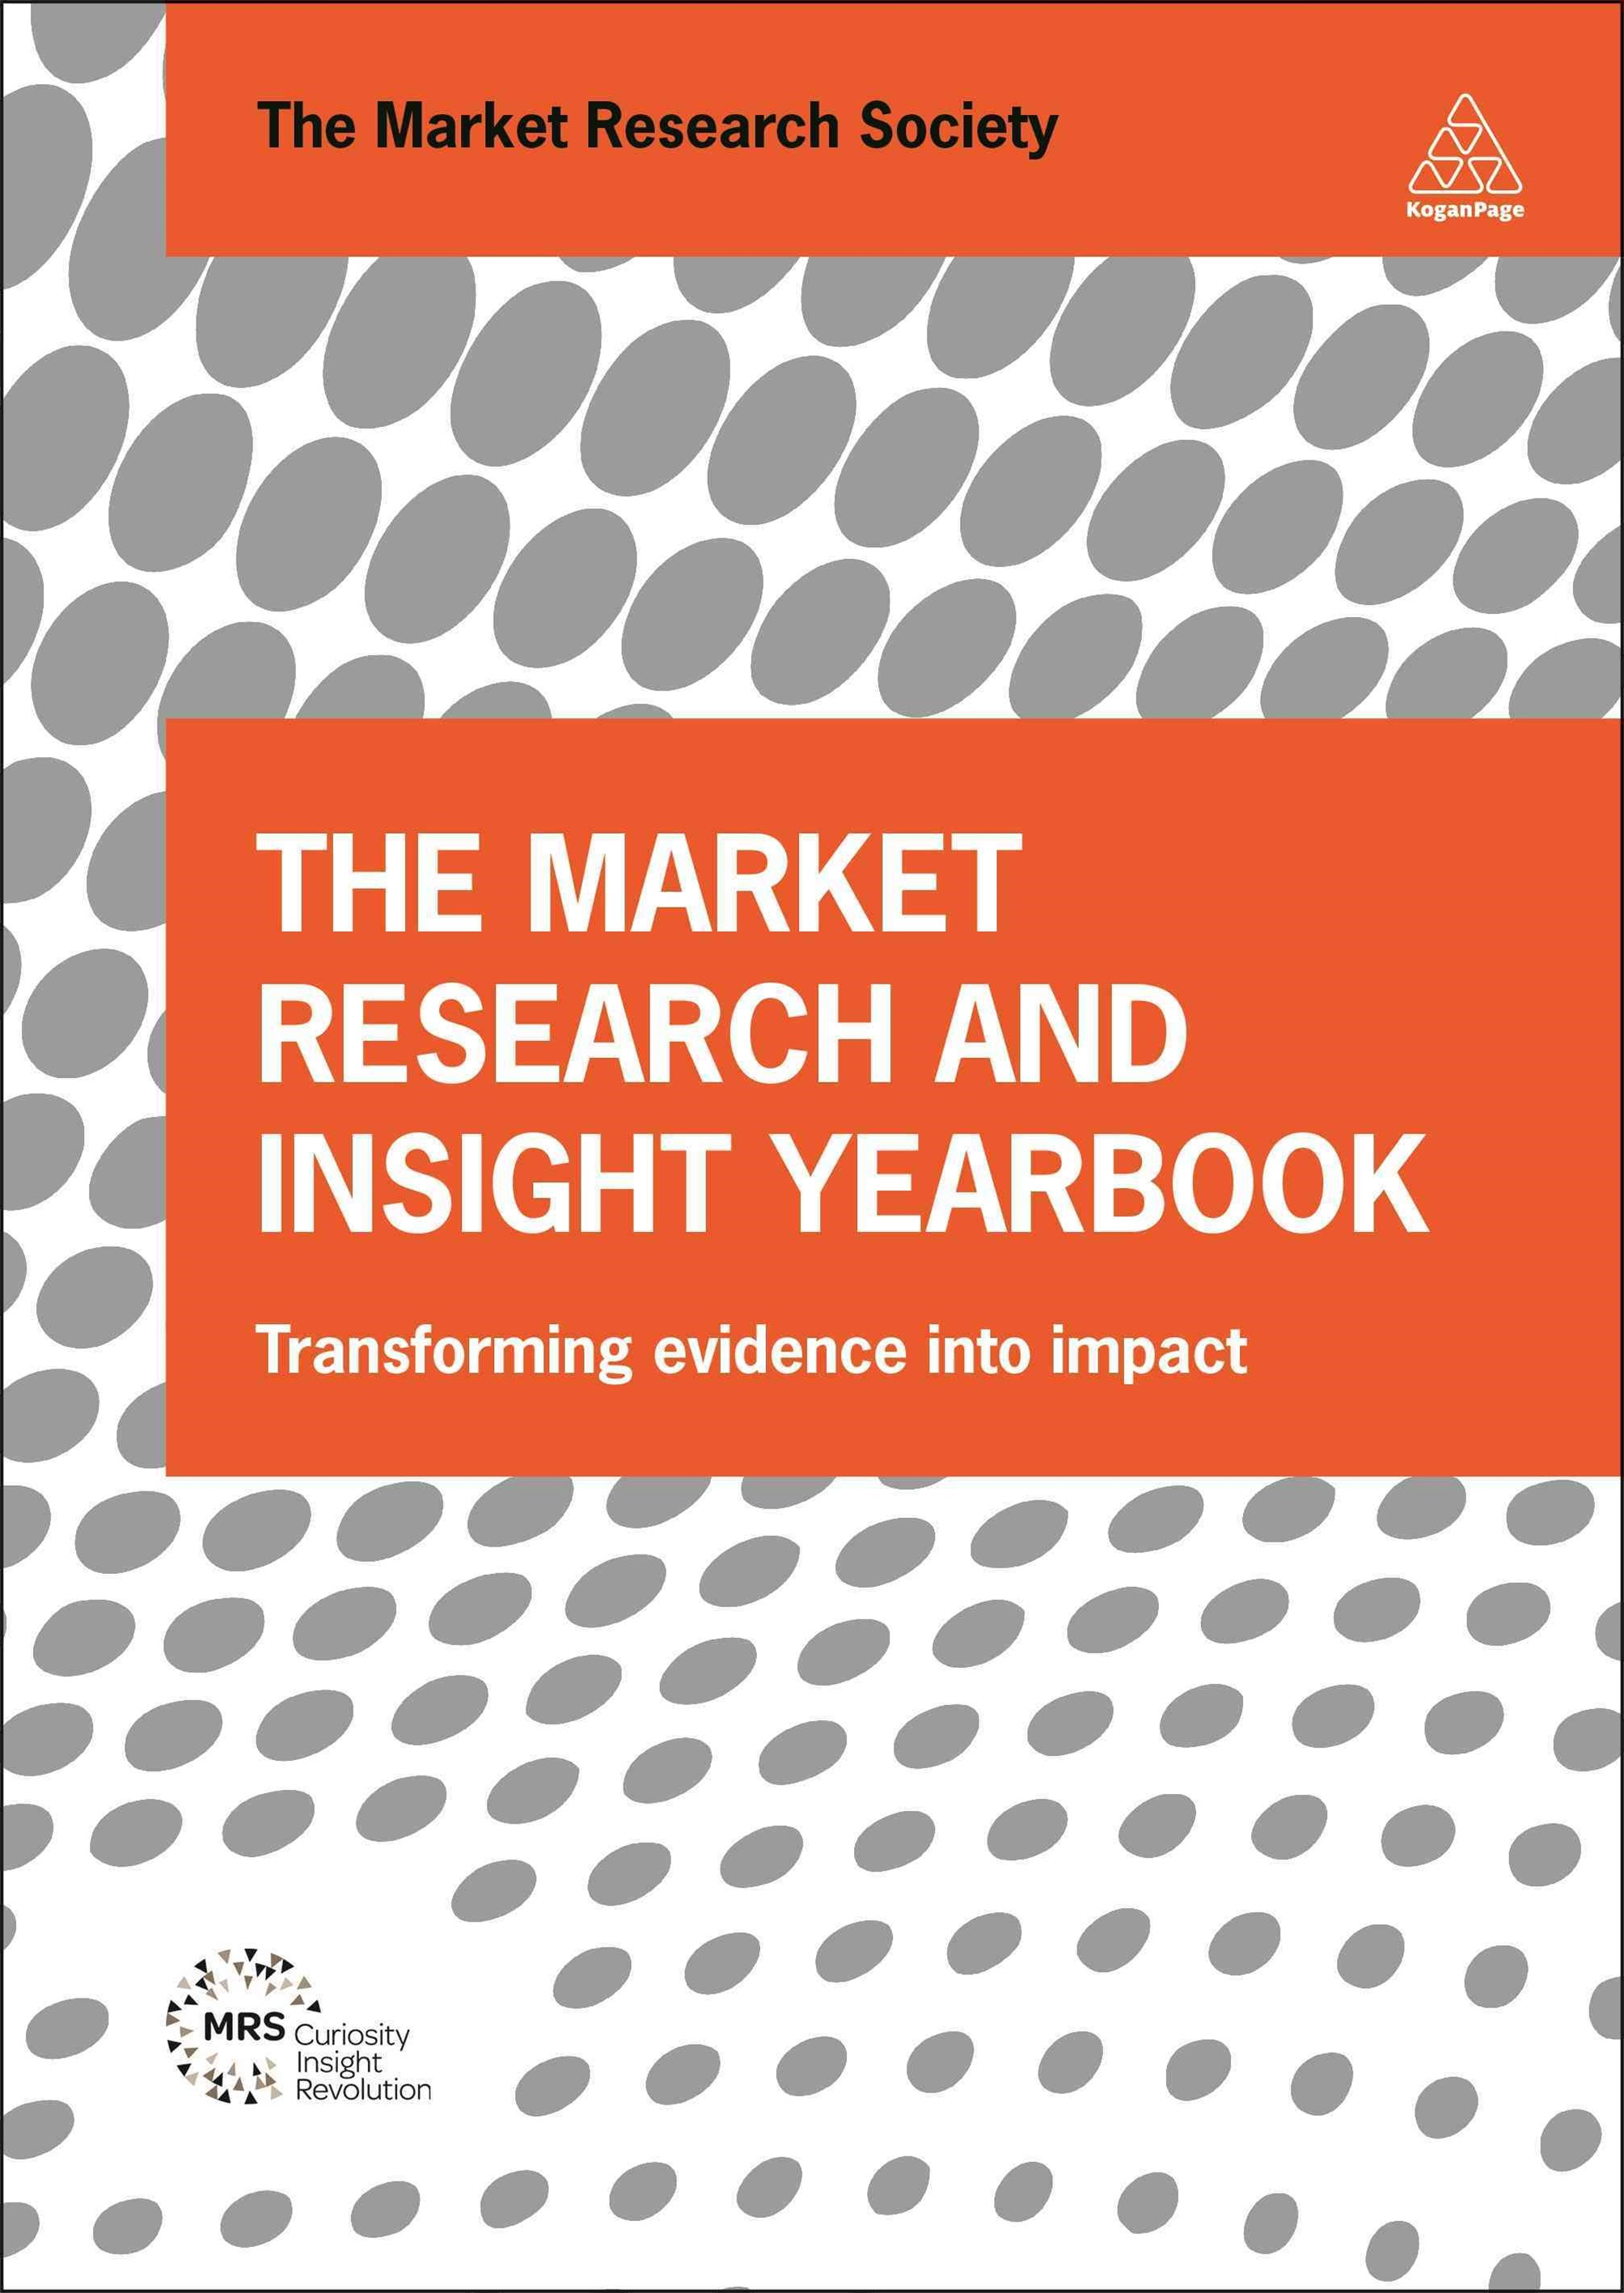 Market Research and Insight Yearbook